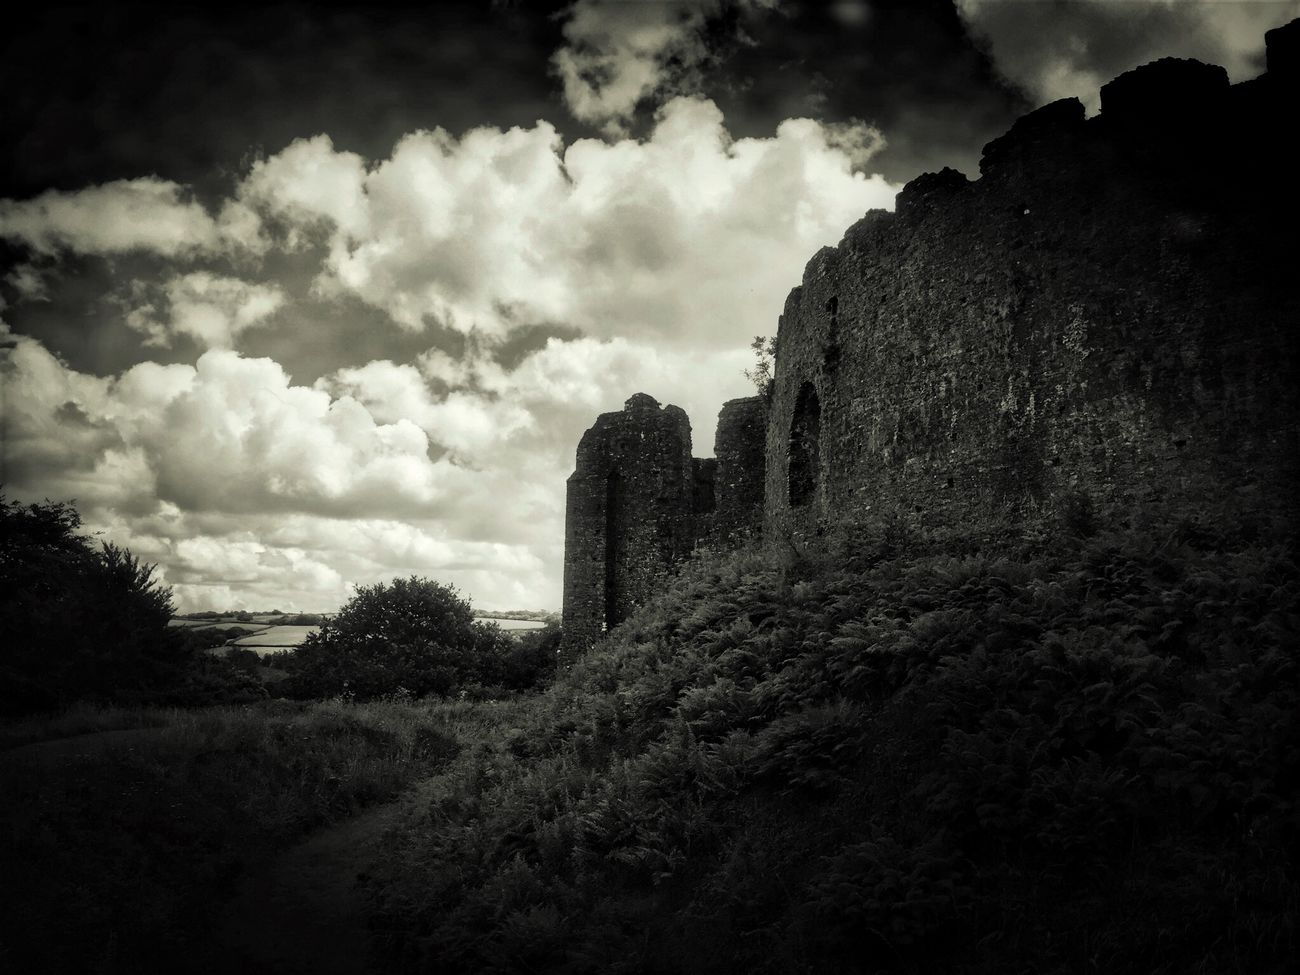 Restormel Castle Sky Castle Ruins Blackandwhite IPhoneography IPhone Photography Tadaa Community Black & White Darkness And Light